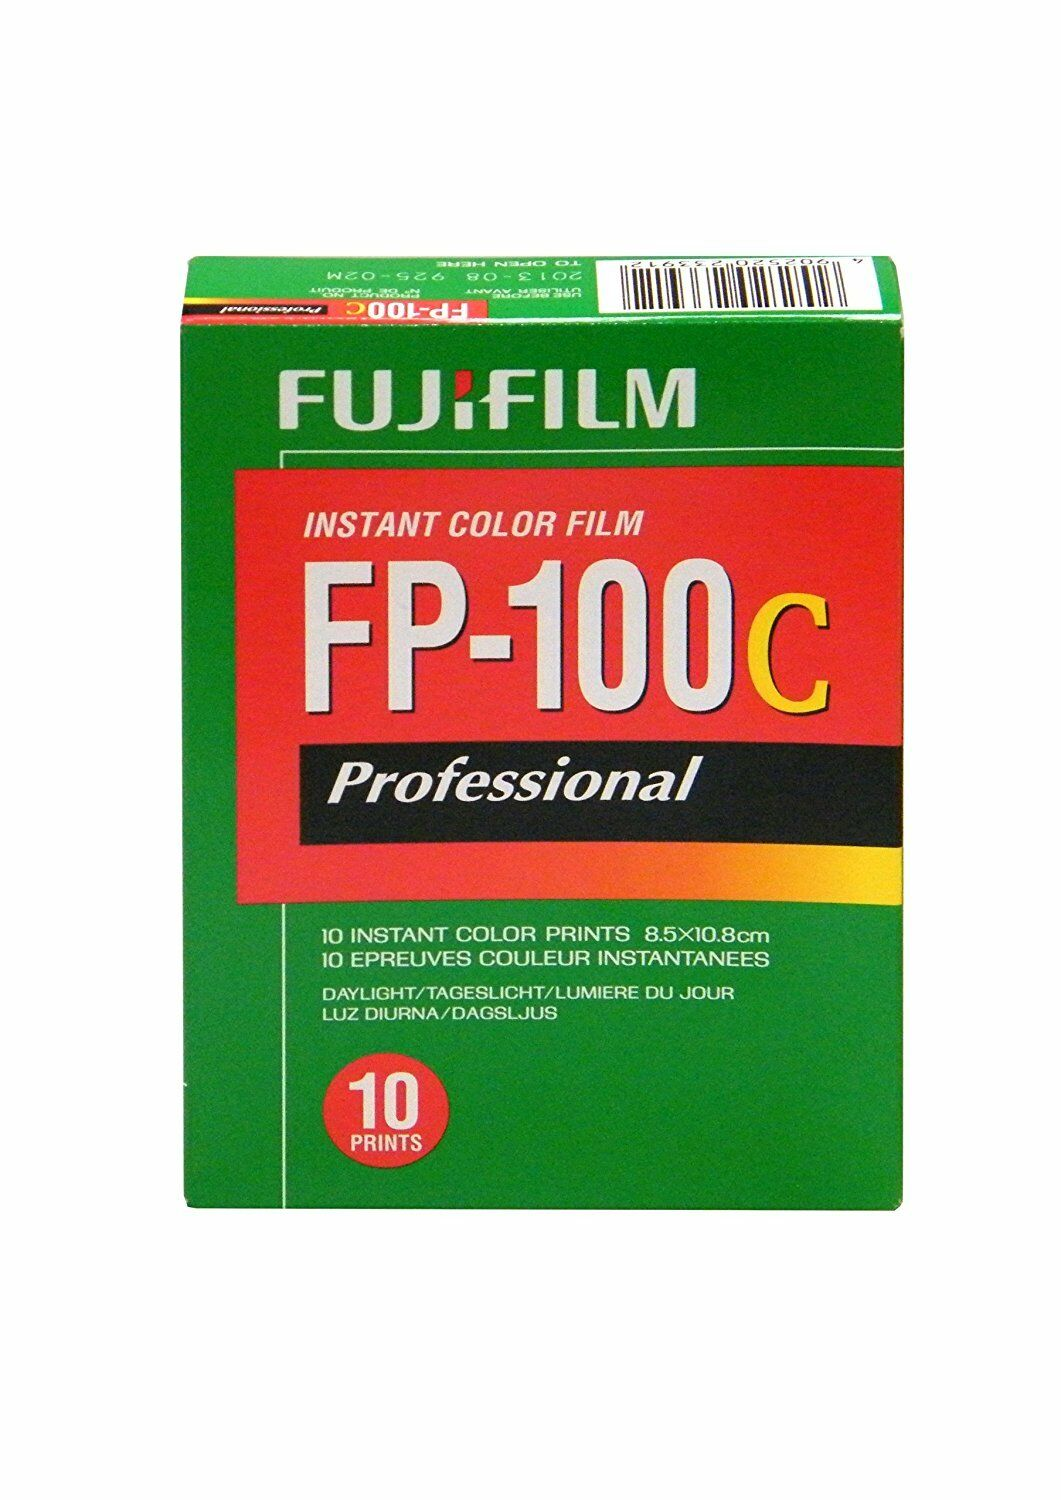 Fujifilm Fuji FP-100C Instant Color Film 10 Exposures Glossy Fuji films 10/2018